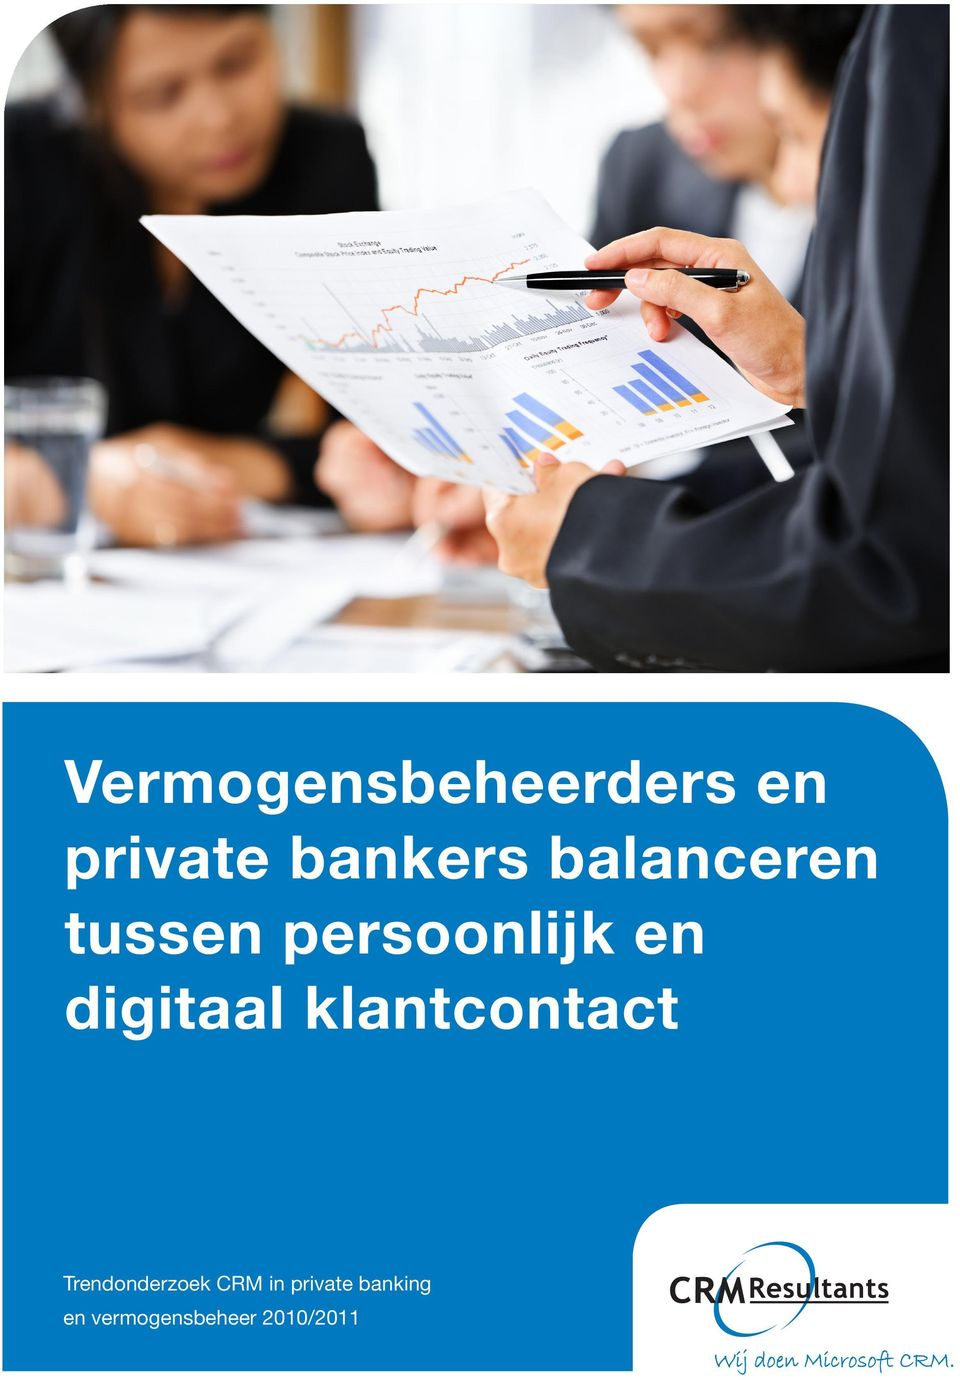 in private banking en vermogensbeheer 2010/2011